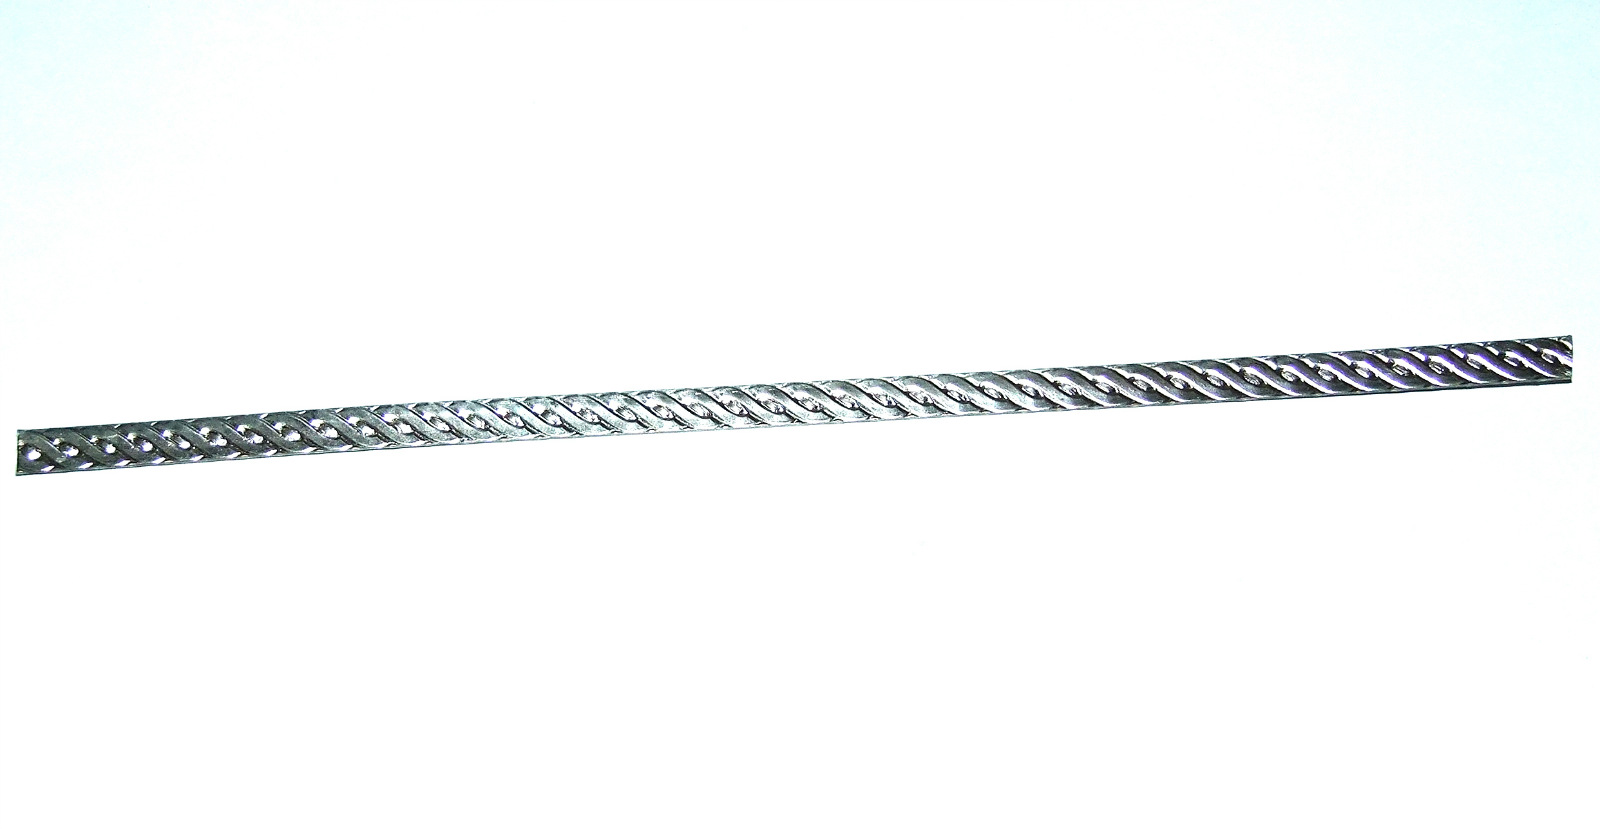 Details about Rope Patterned Sterling Silver Wire 8 Inches By 6 5mm Wide